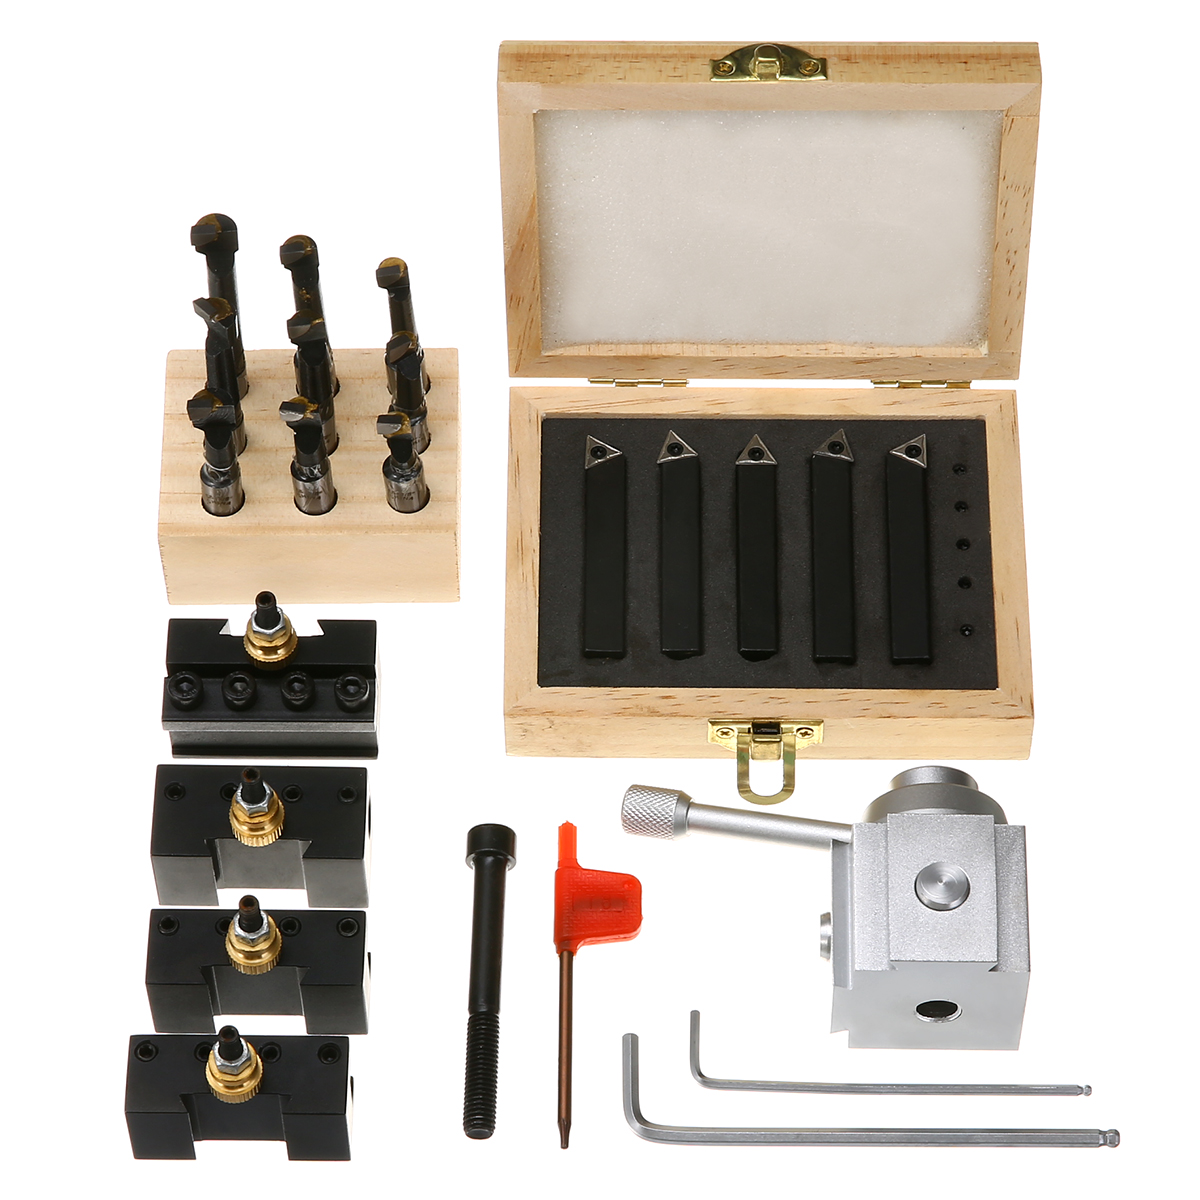 9pcs 3/8 Boring Bar + 5pcs Quick Change Tool Post Holder + 5pcs 3/8 Turning Tool Holder with Wooden Box mayitr 5pcs quick change post tool holder 9pcs 3 8 boring bar with 5pcs 3 8 turning tool for lathe tools